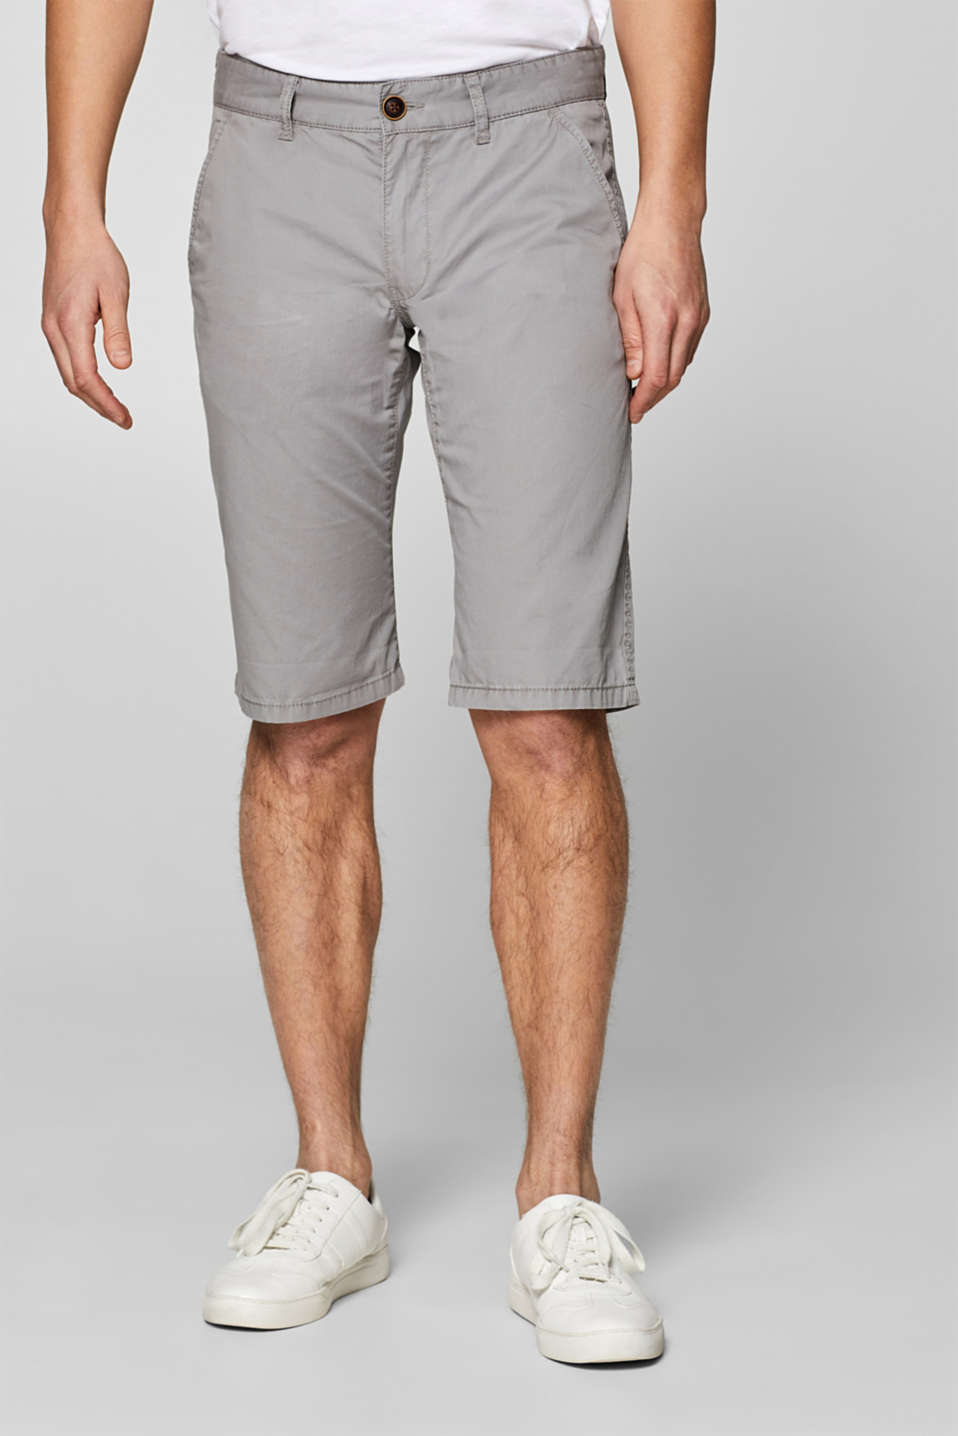 edc - Shorts chino con cotone biologico